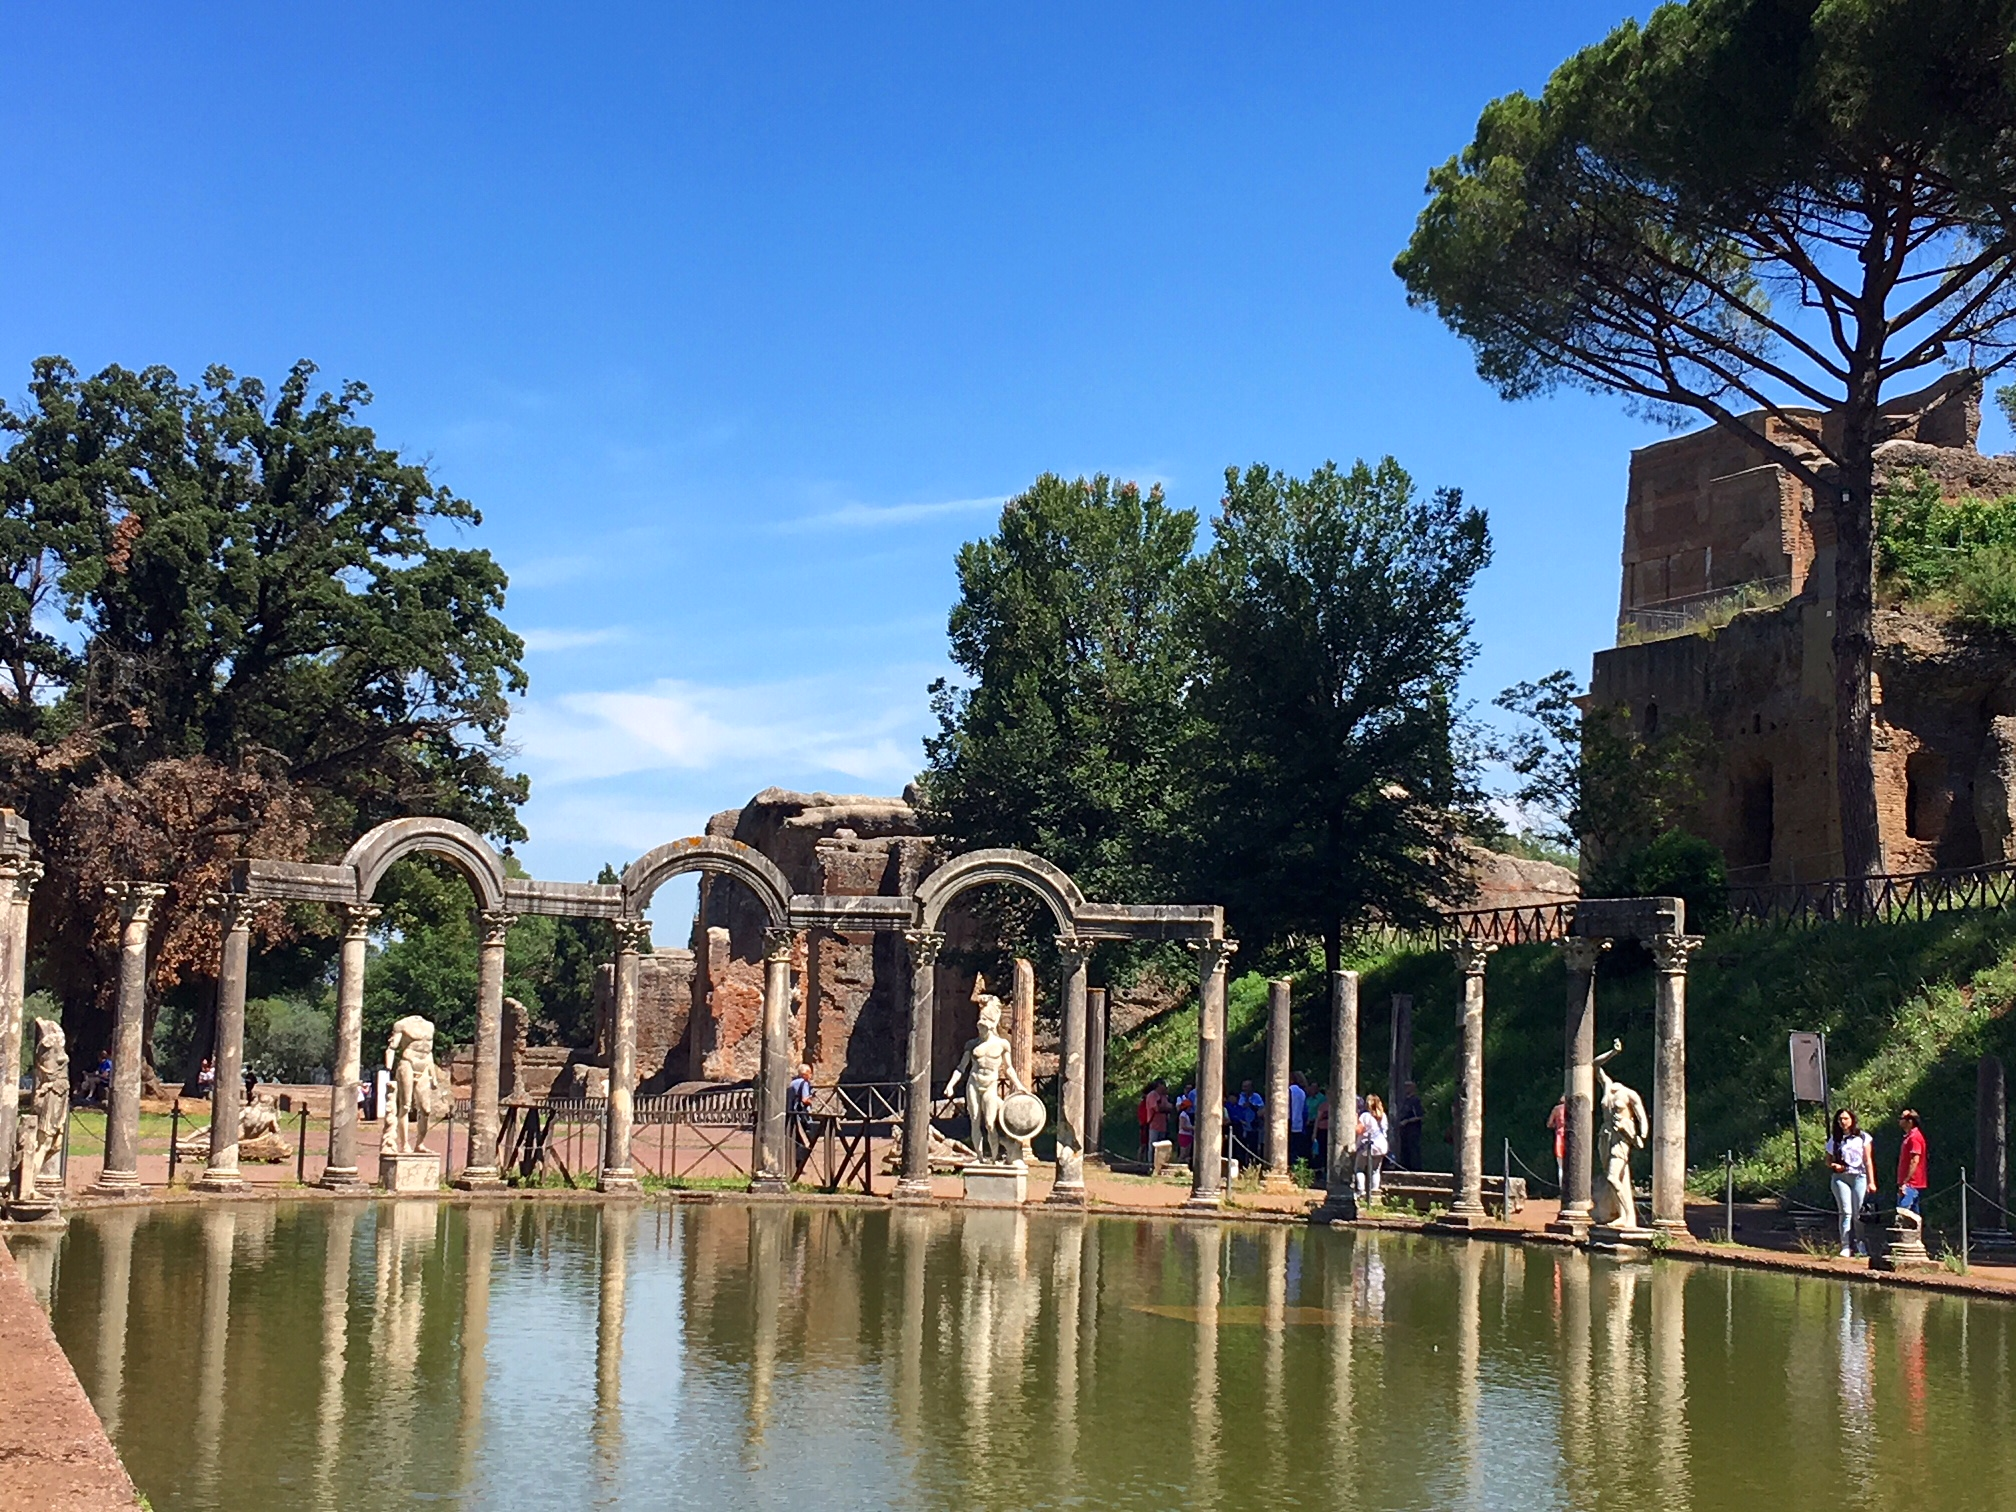 The best day trips from Rome. Why you should visit Hadrian's Villa in Tivoli and 9 other fabulous day trips from Rome by train